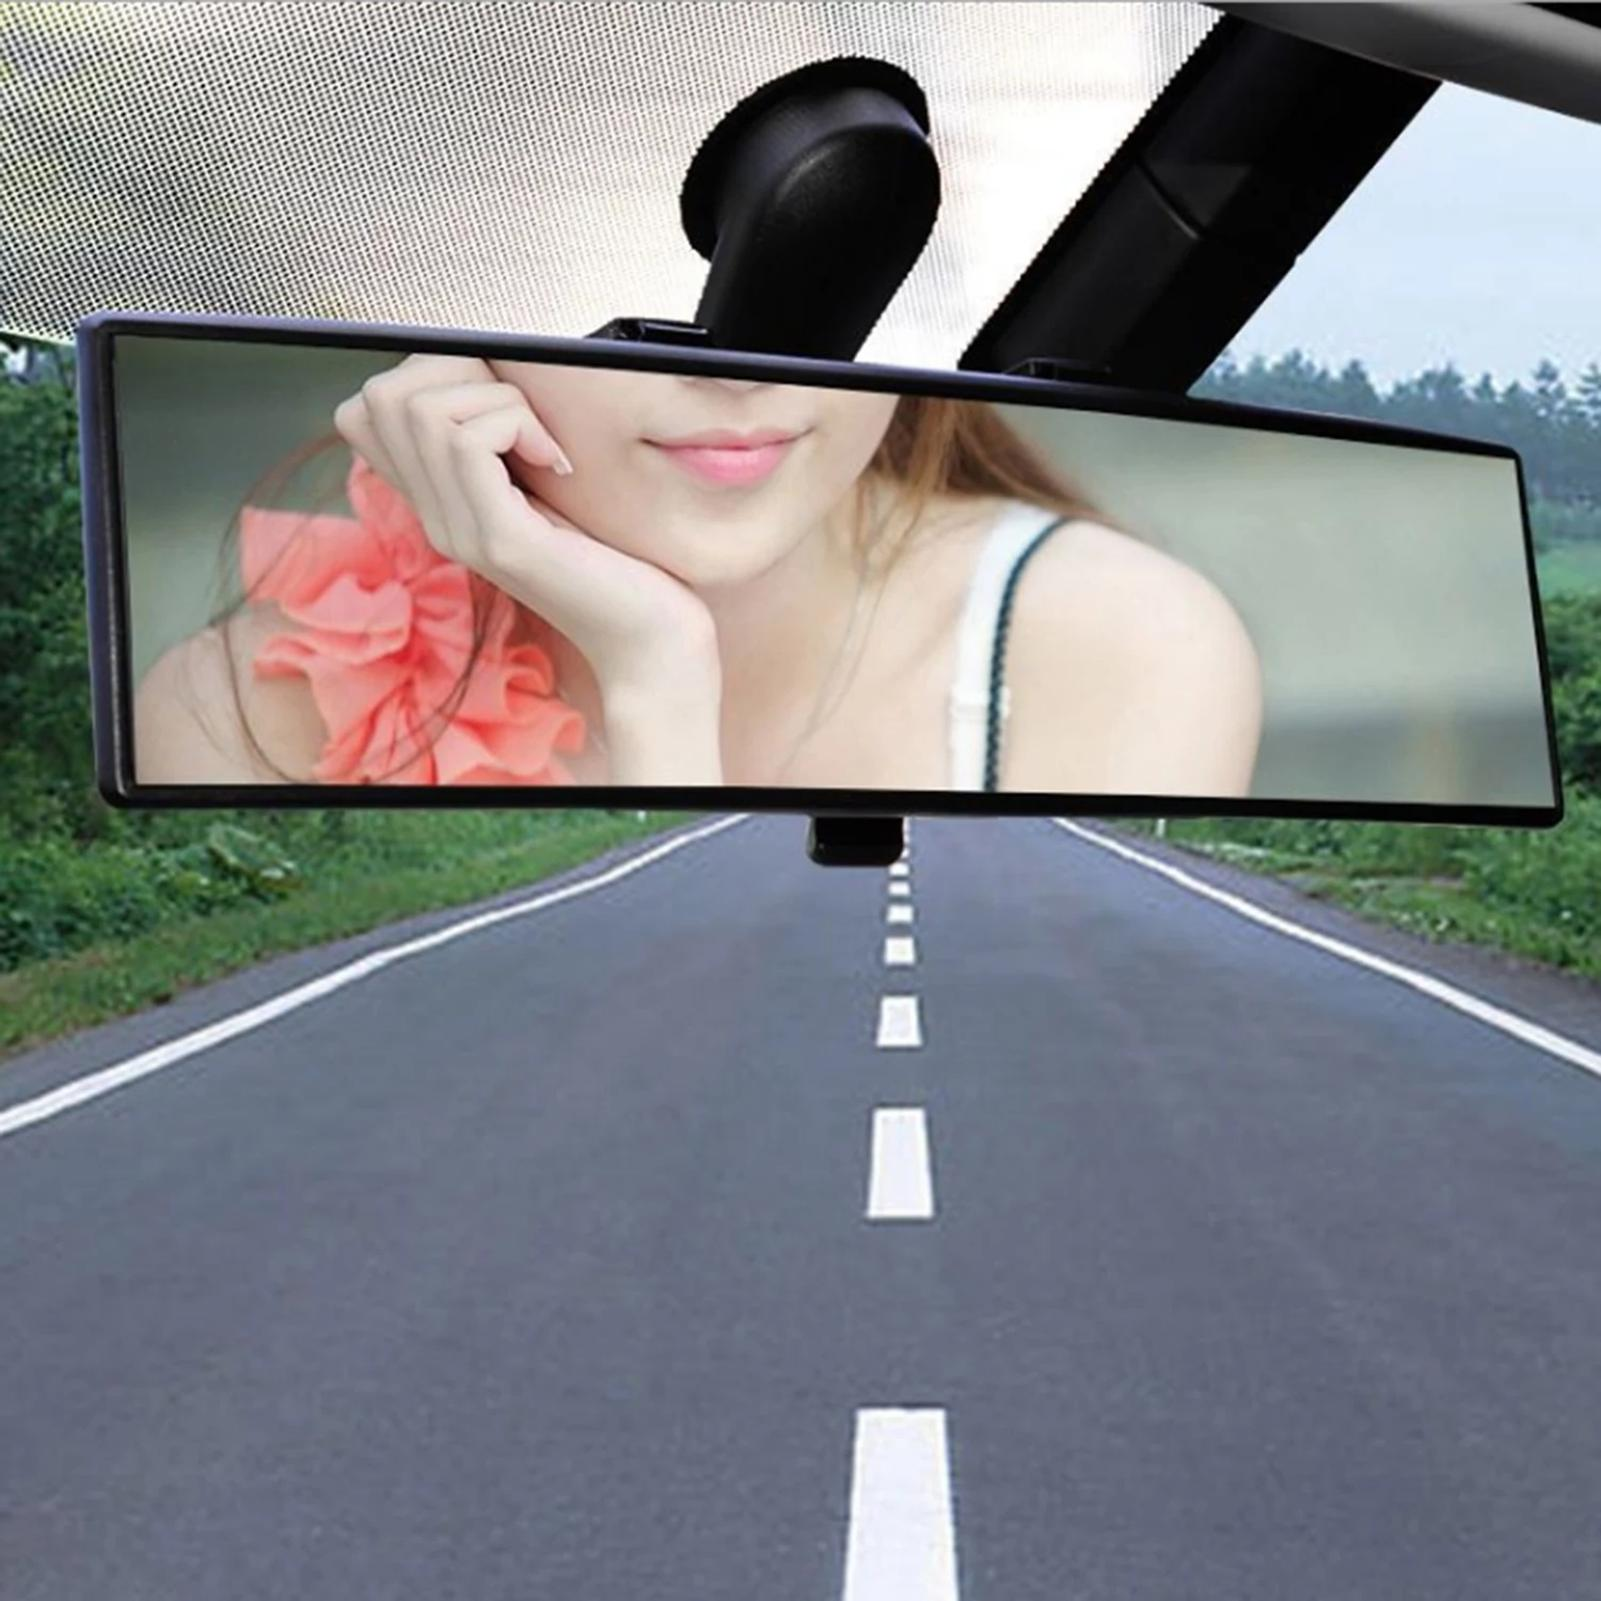 Universal Car Curved Surface Rearview Mirror with Clip Auto Safety Accessories for SUVs, for CRVs, vans